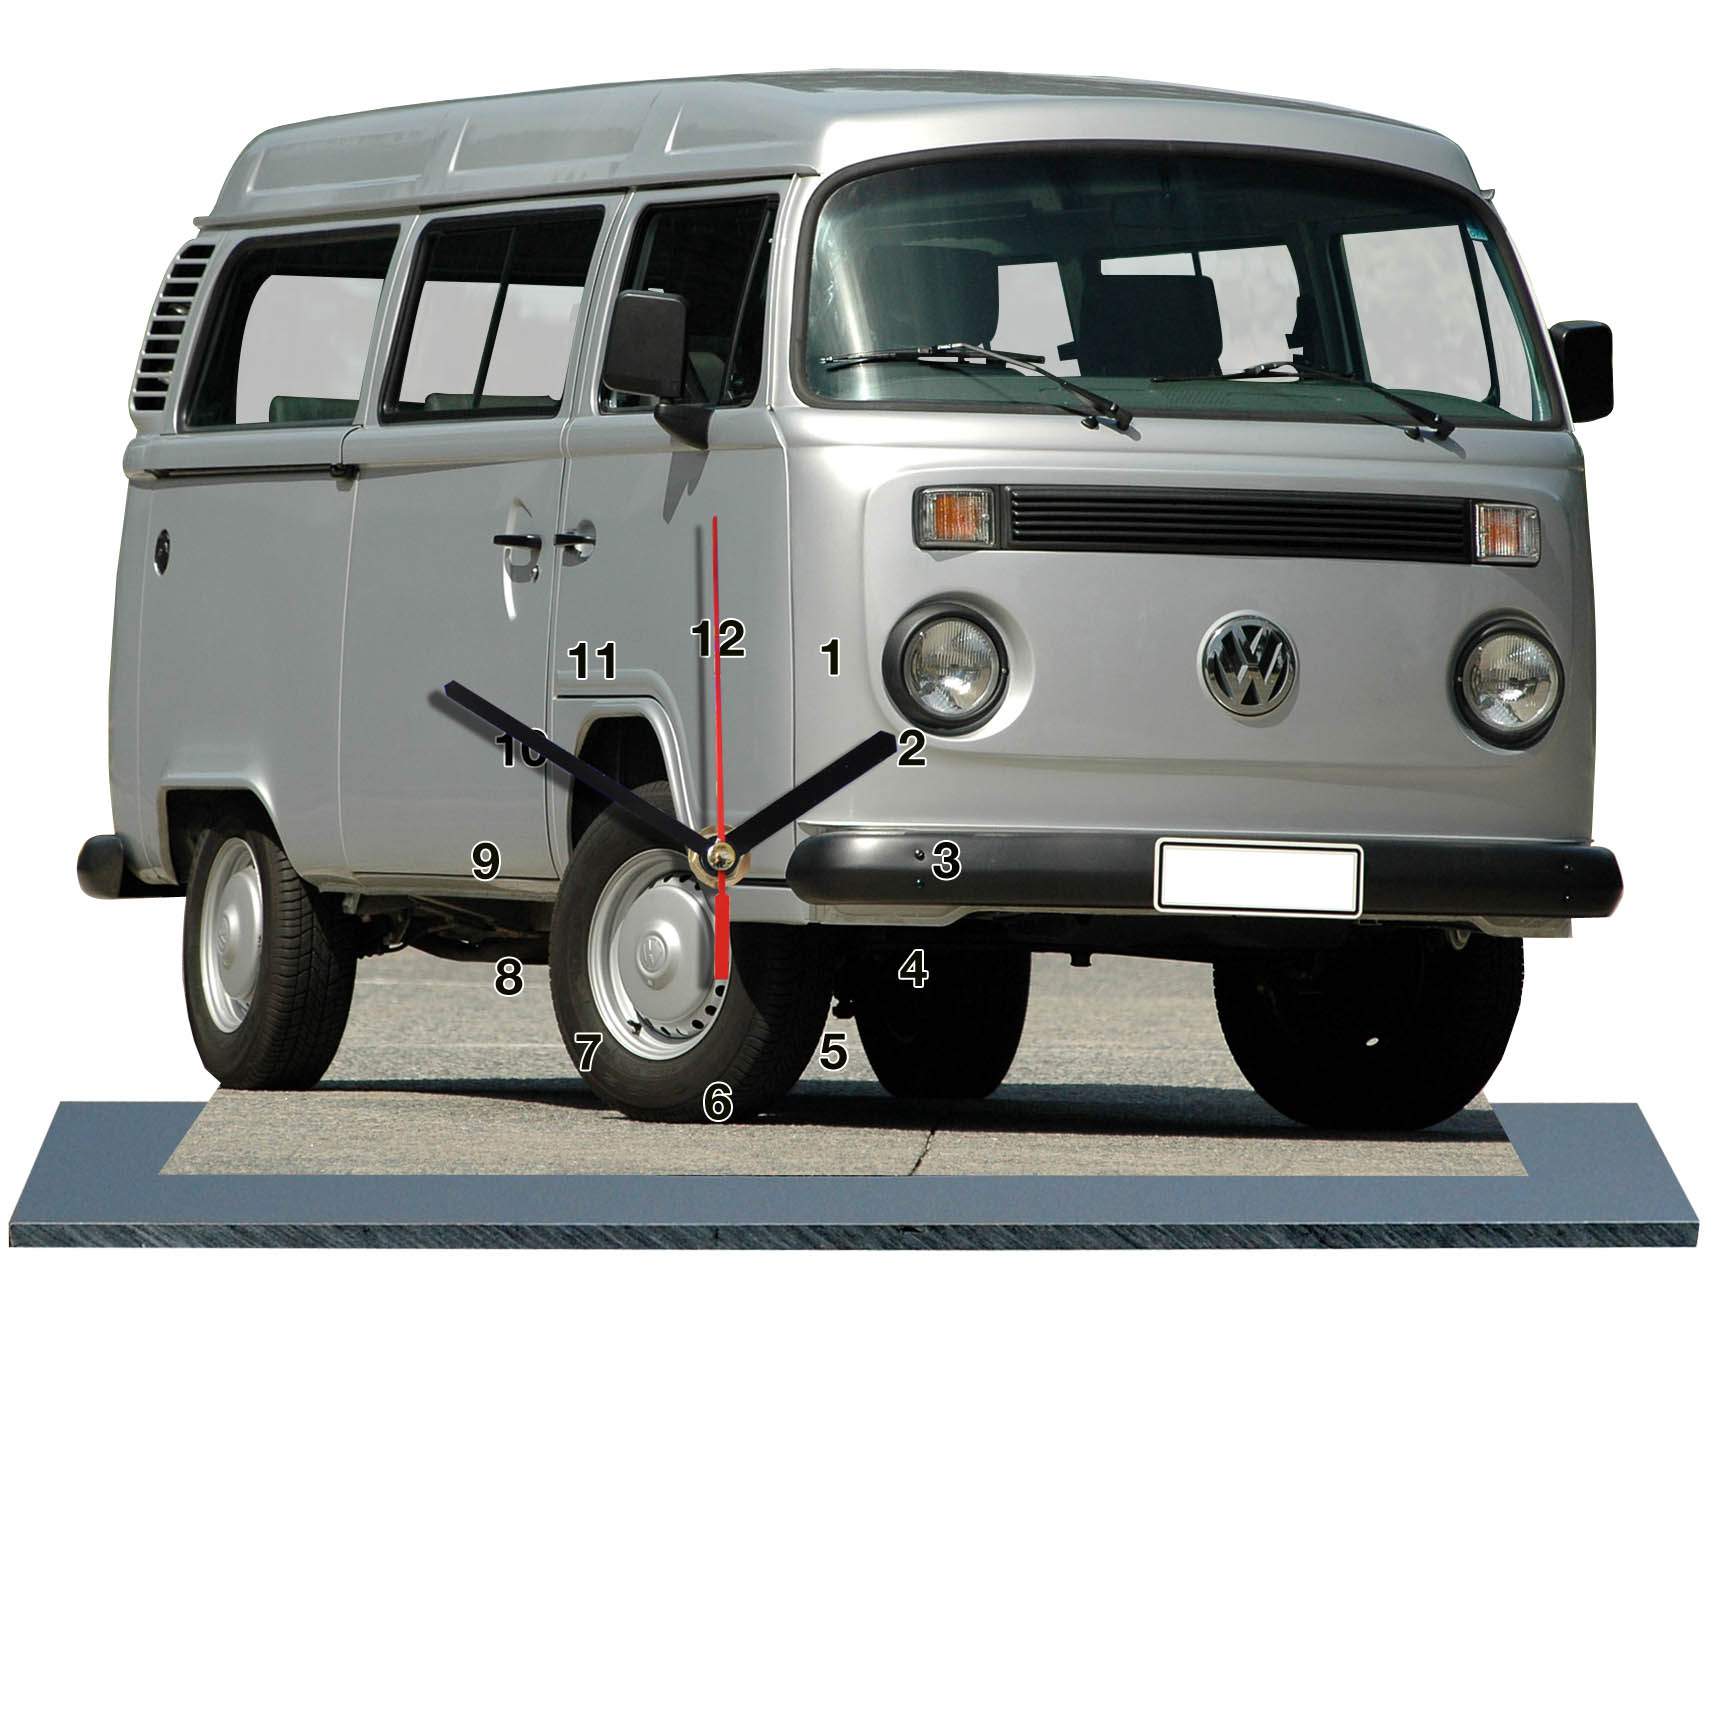 volkswagen vw combi gris en horloge miniature sur socle. Black Bedroom Furniture Sets. Home Design Ideas